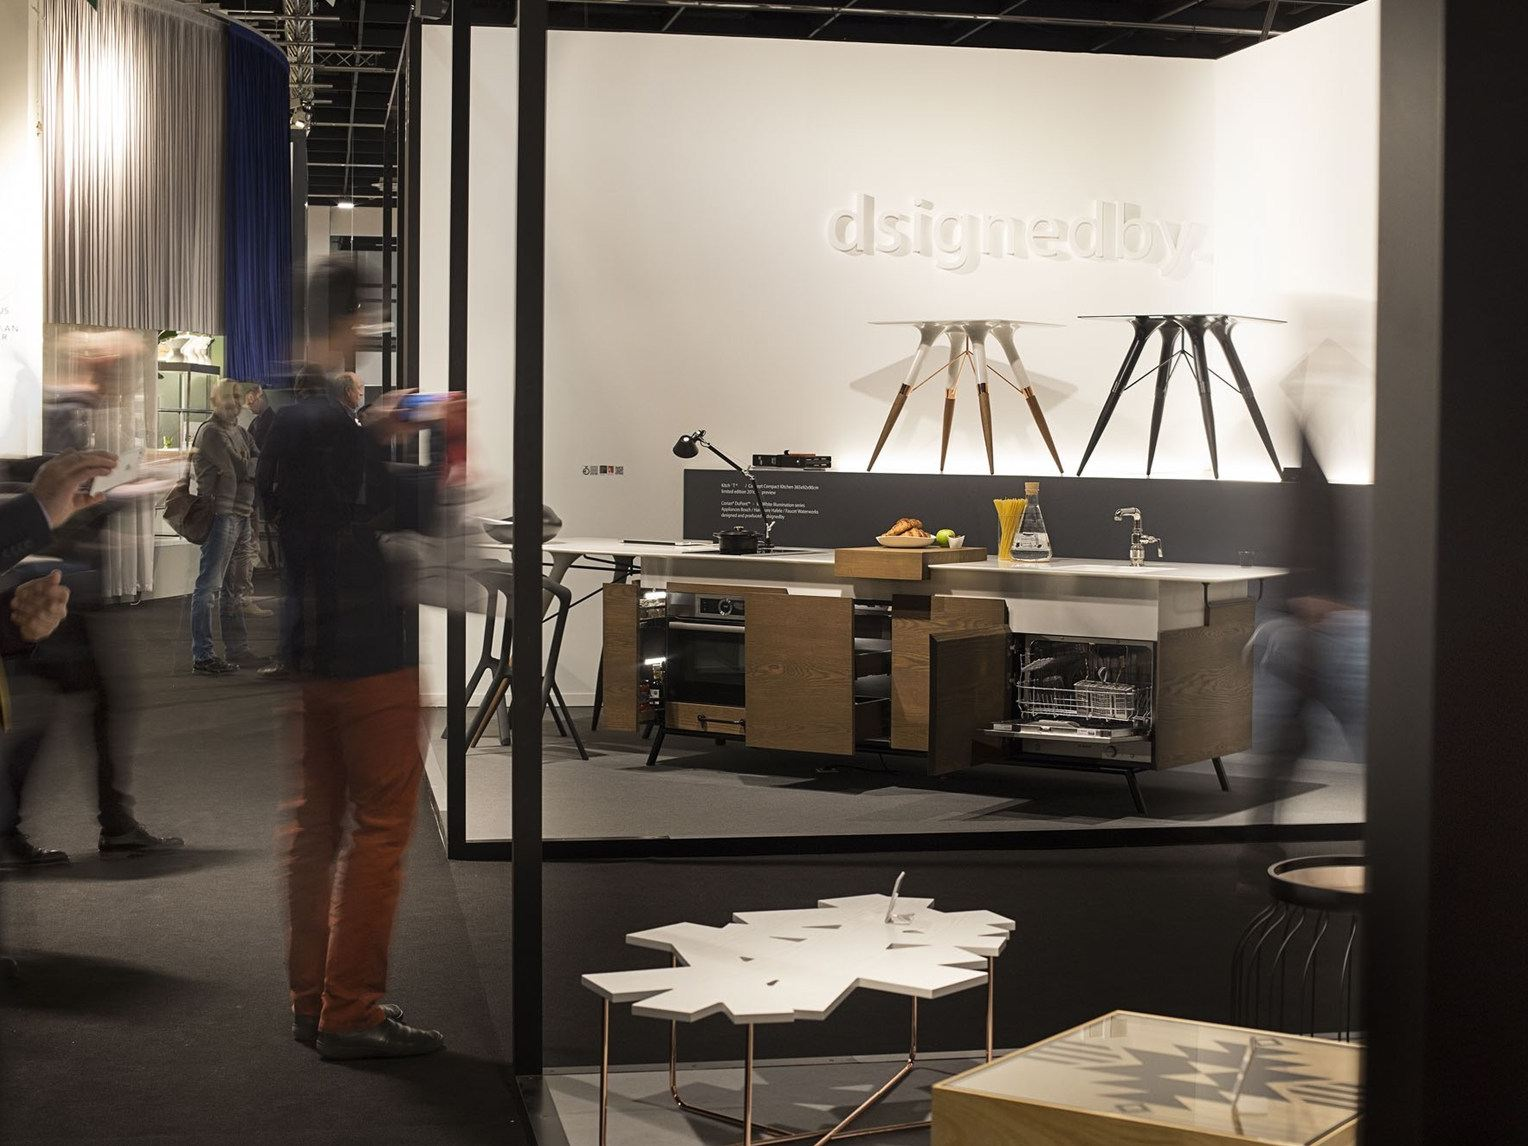 Interesting cuisine en corian kitchu t by dsignedby design for Cuisine lineaire design